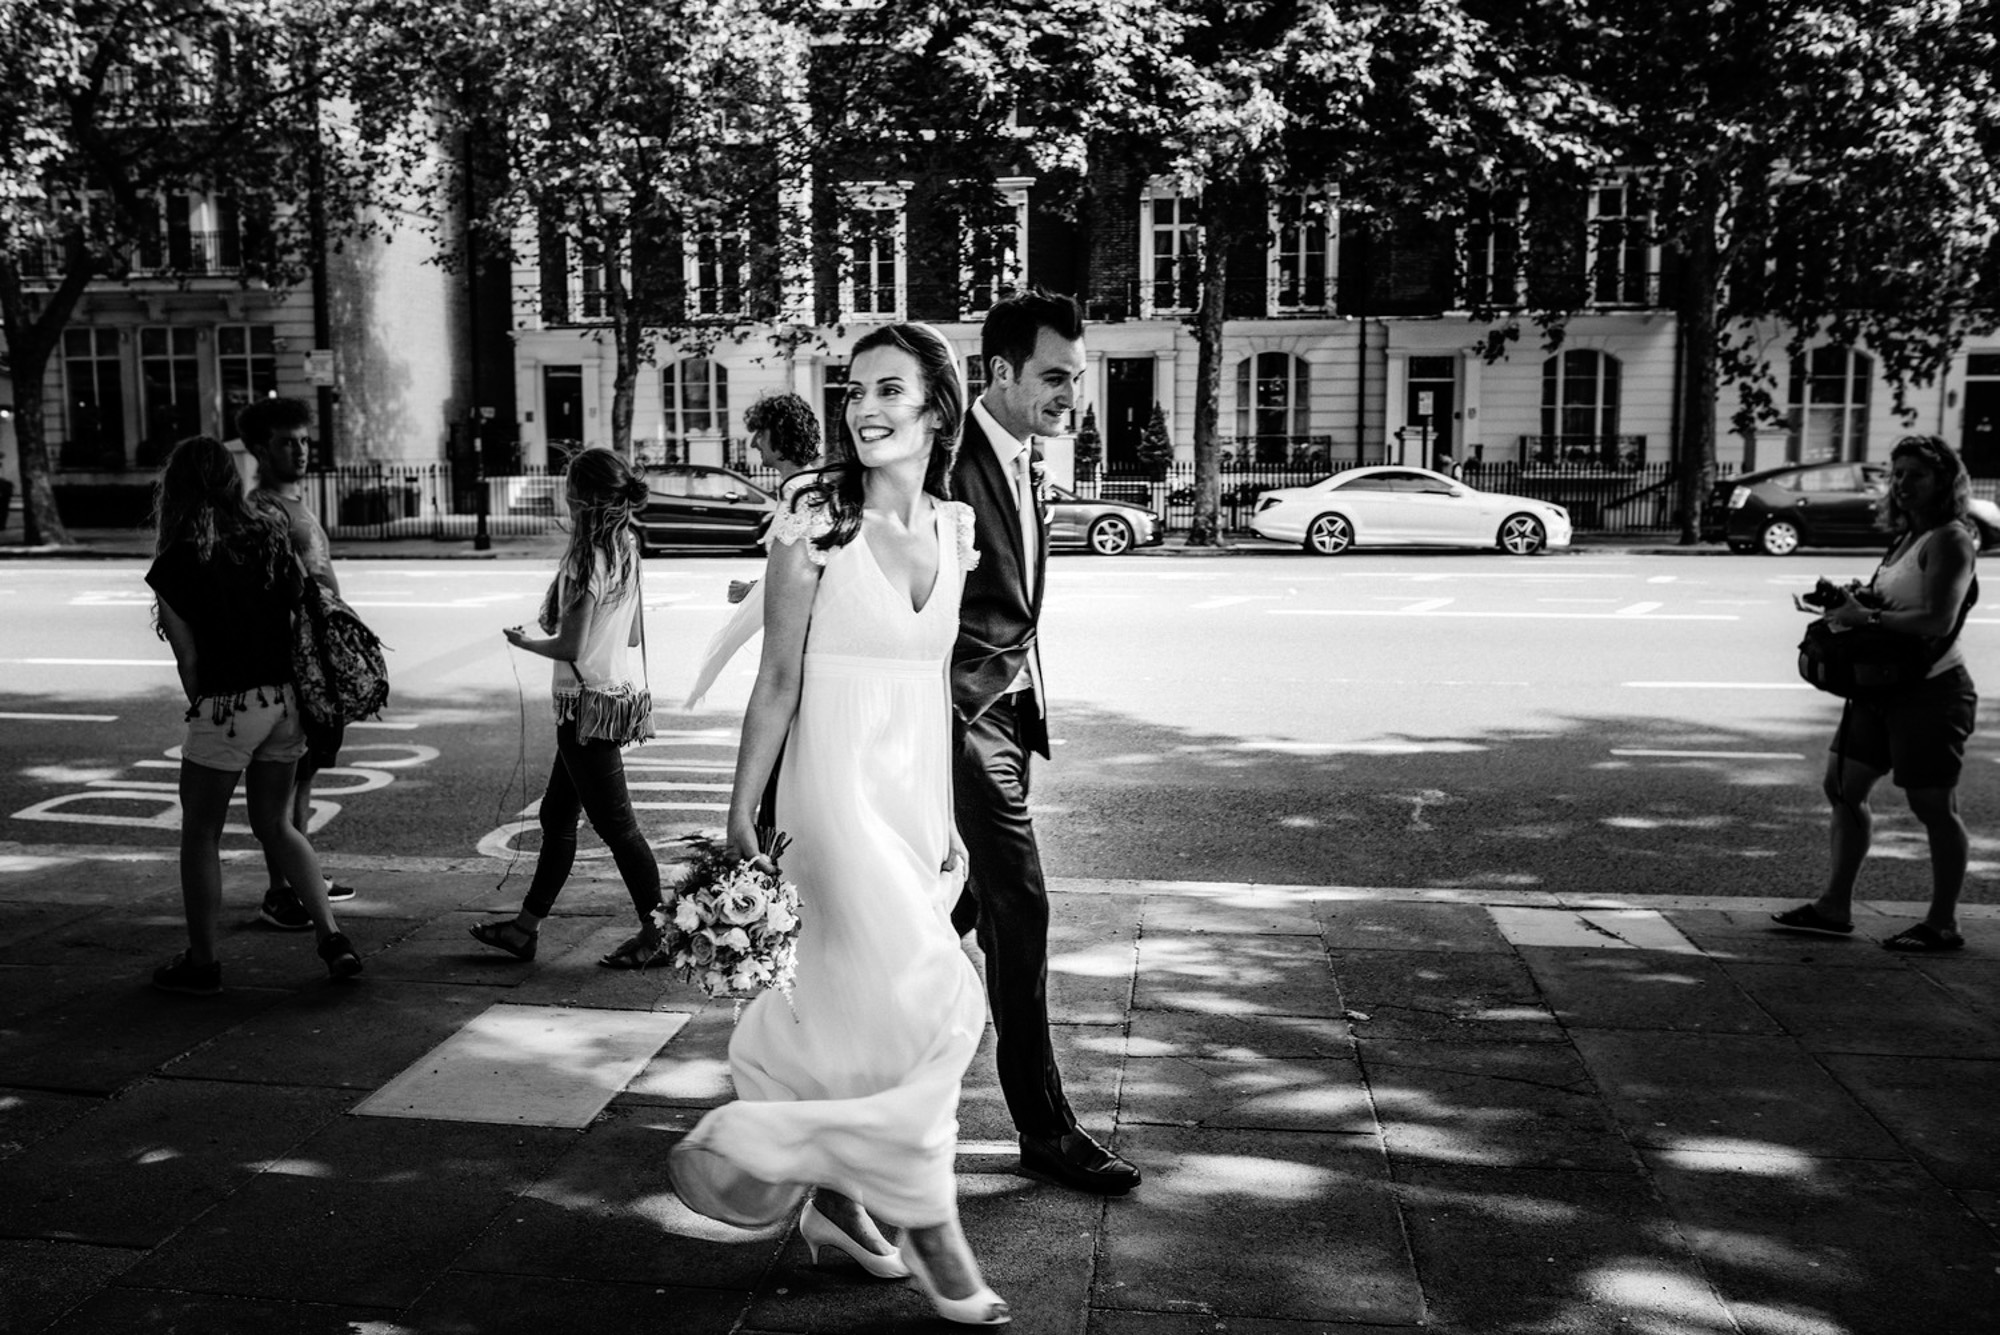 black and White wedding photography-48.jpg